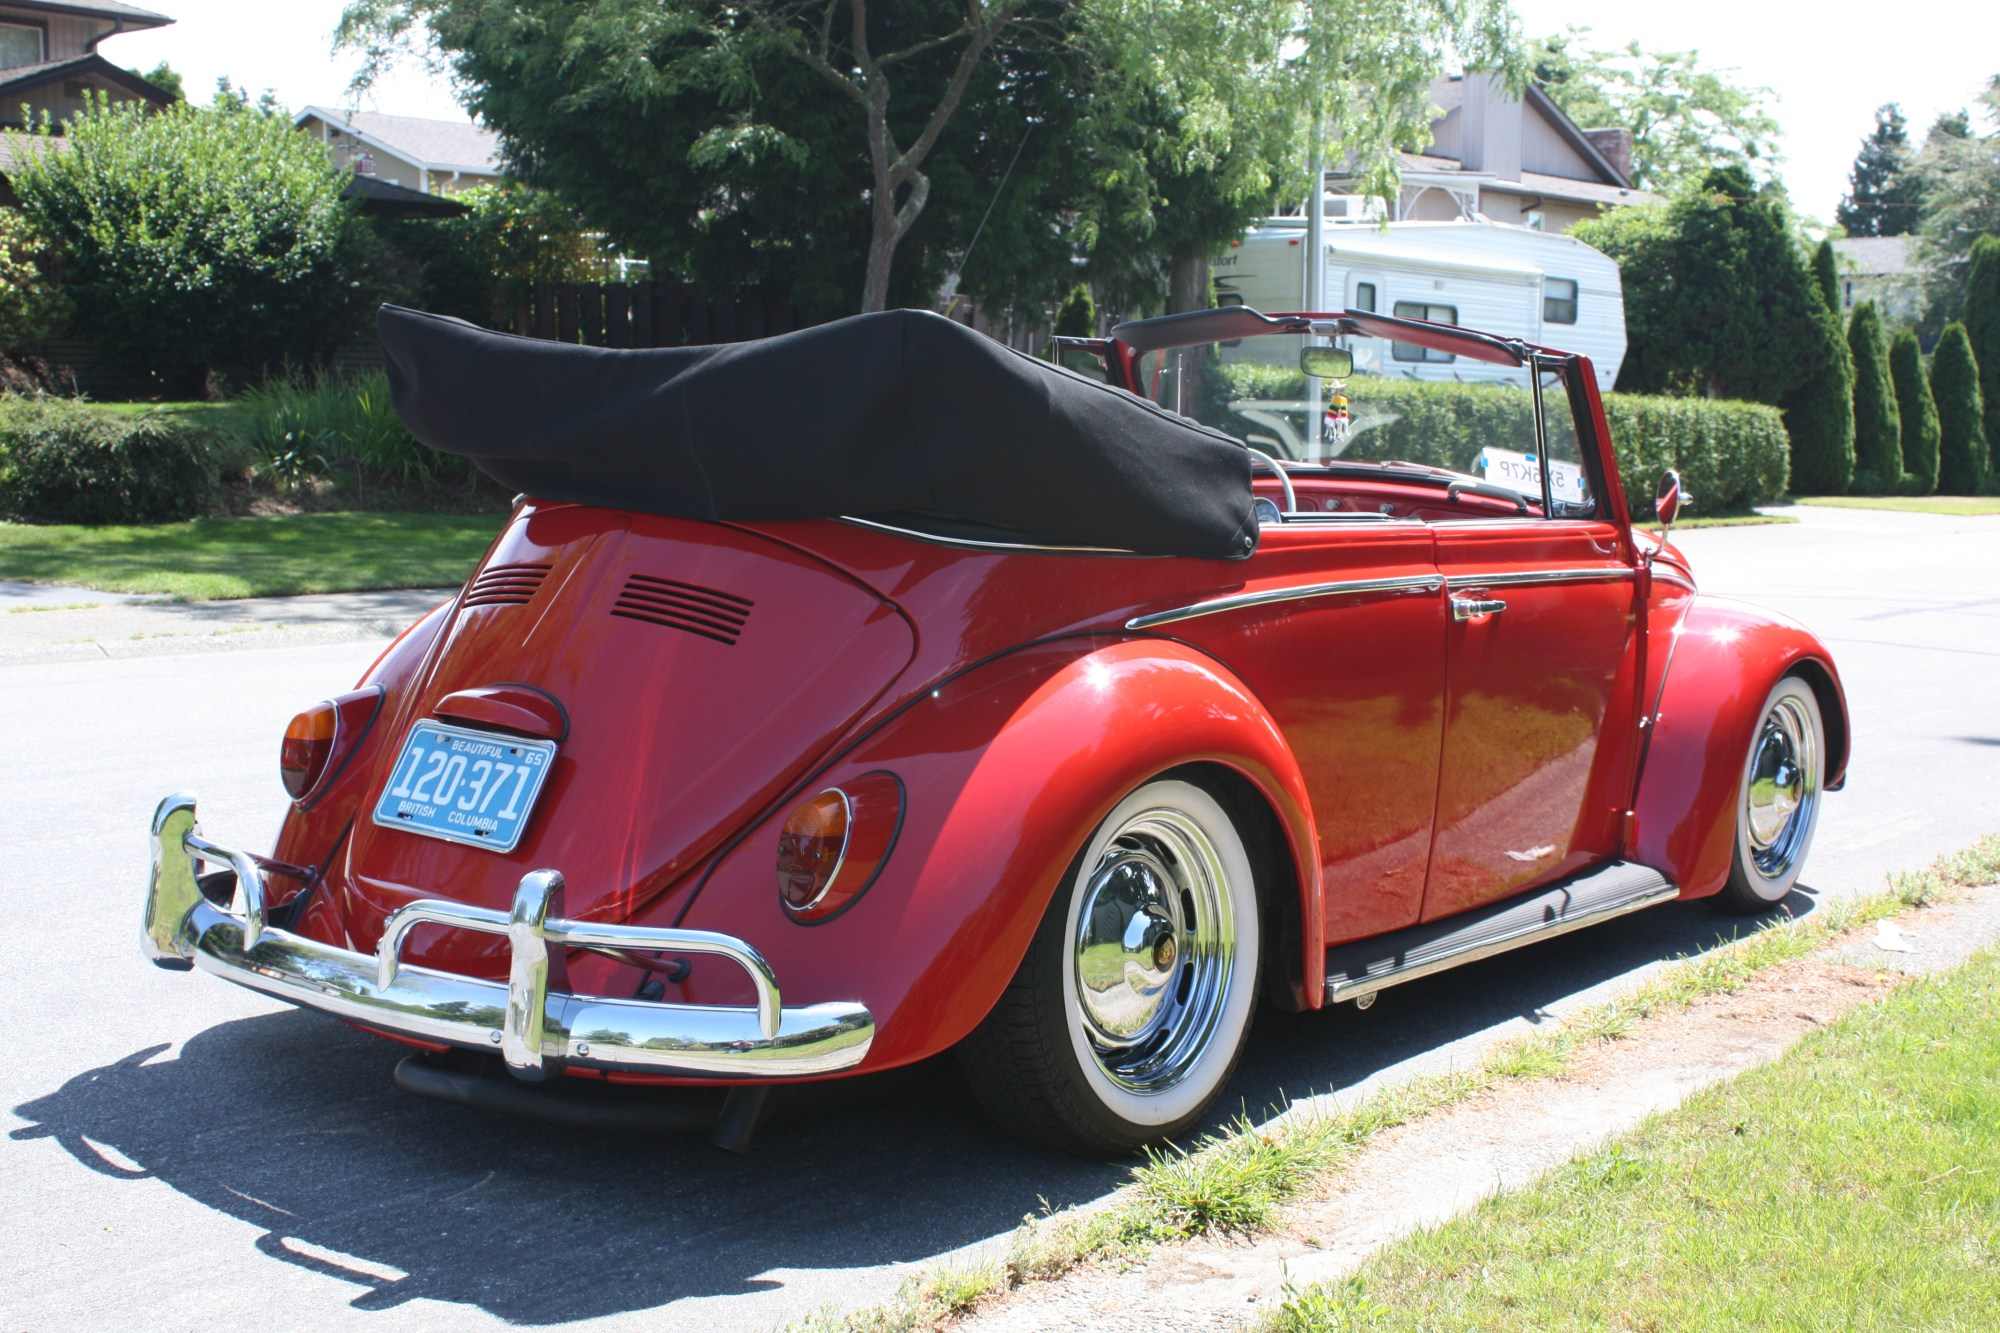 hight resolution of  vdubtruck 1965 volkswagen beetle 22015434002 original